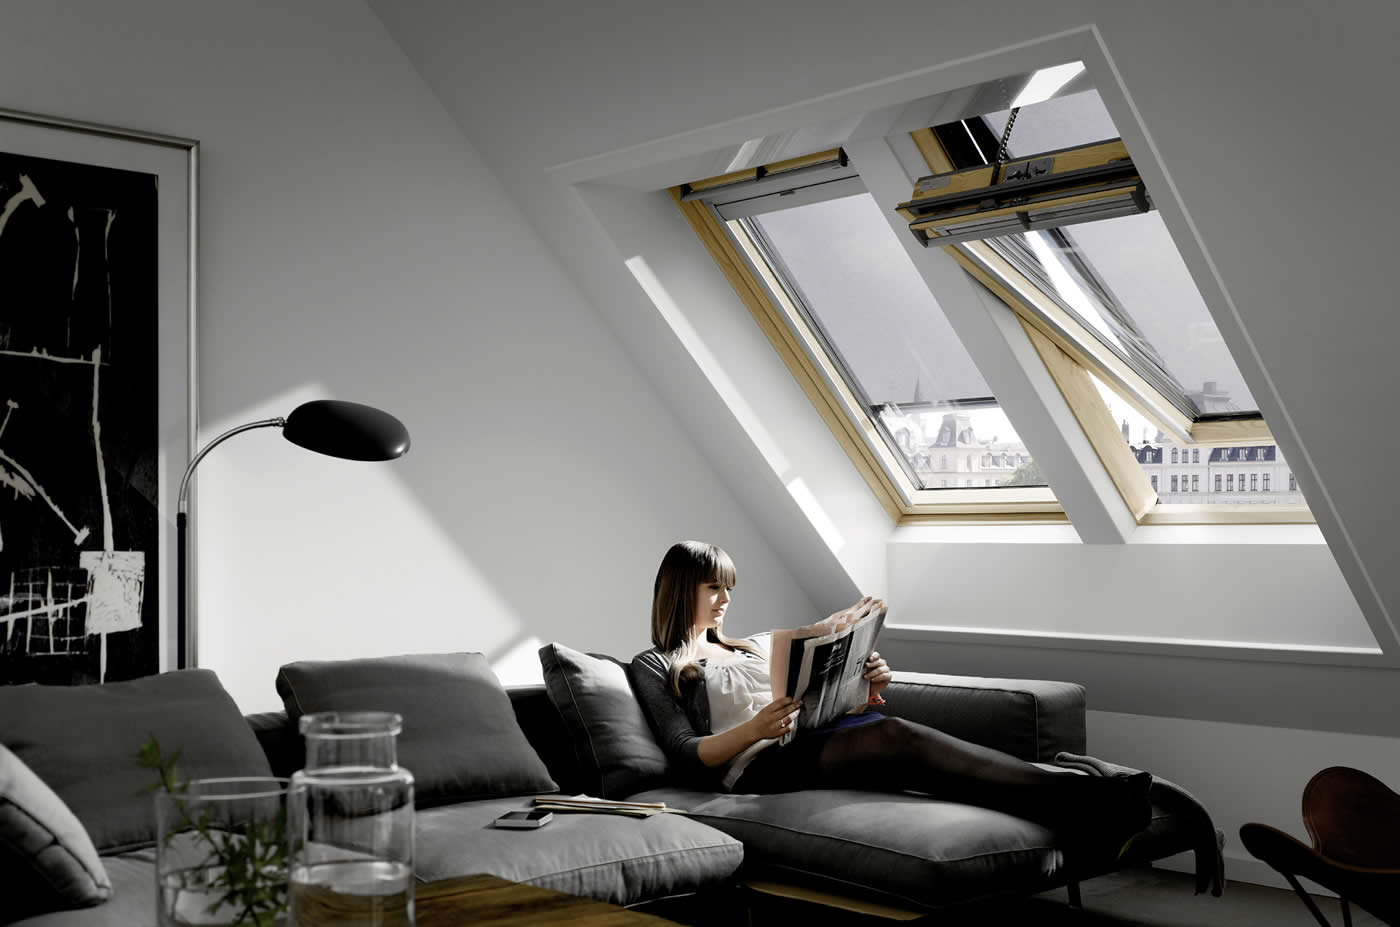 velux fenster einbau velux fenster einbau velux fenster. Black Bedroom Furniture Sets. Home Design Ideas